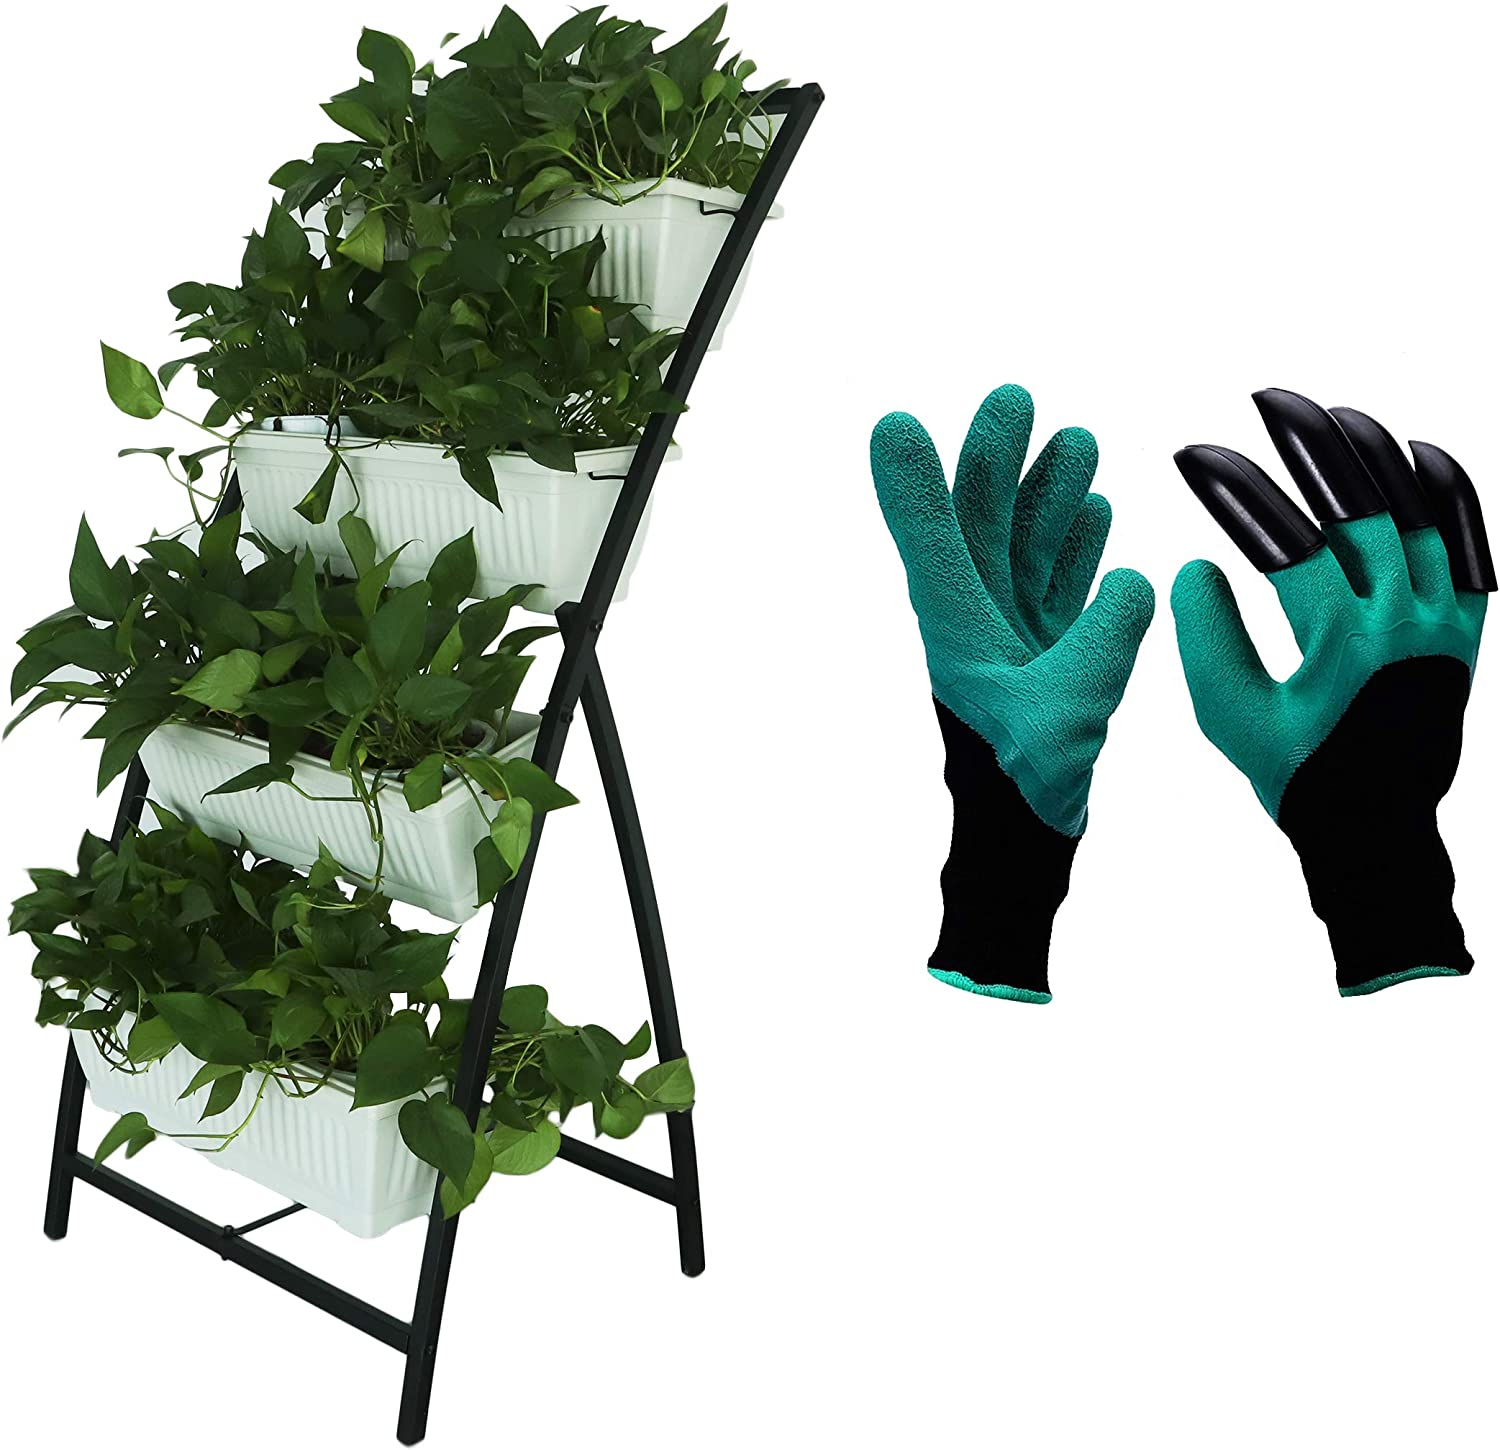 Semblis Outdoors - 6ft Vertical Garden Planter with Gardening Gloves - 4 Box Planters - Free-Standing Tiered Raised Garden Bed - Grow Herbs Vegetables Lettuce Strawberries - for Patio (White)